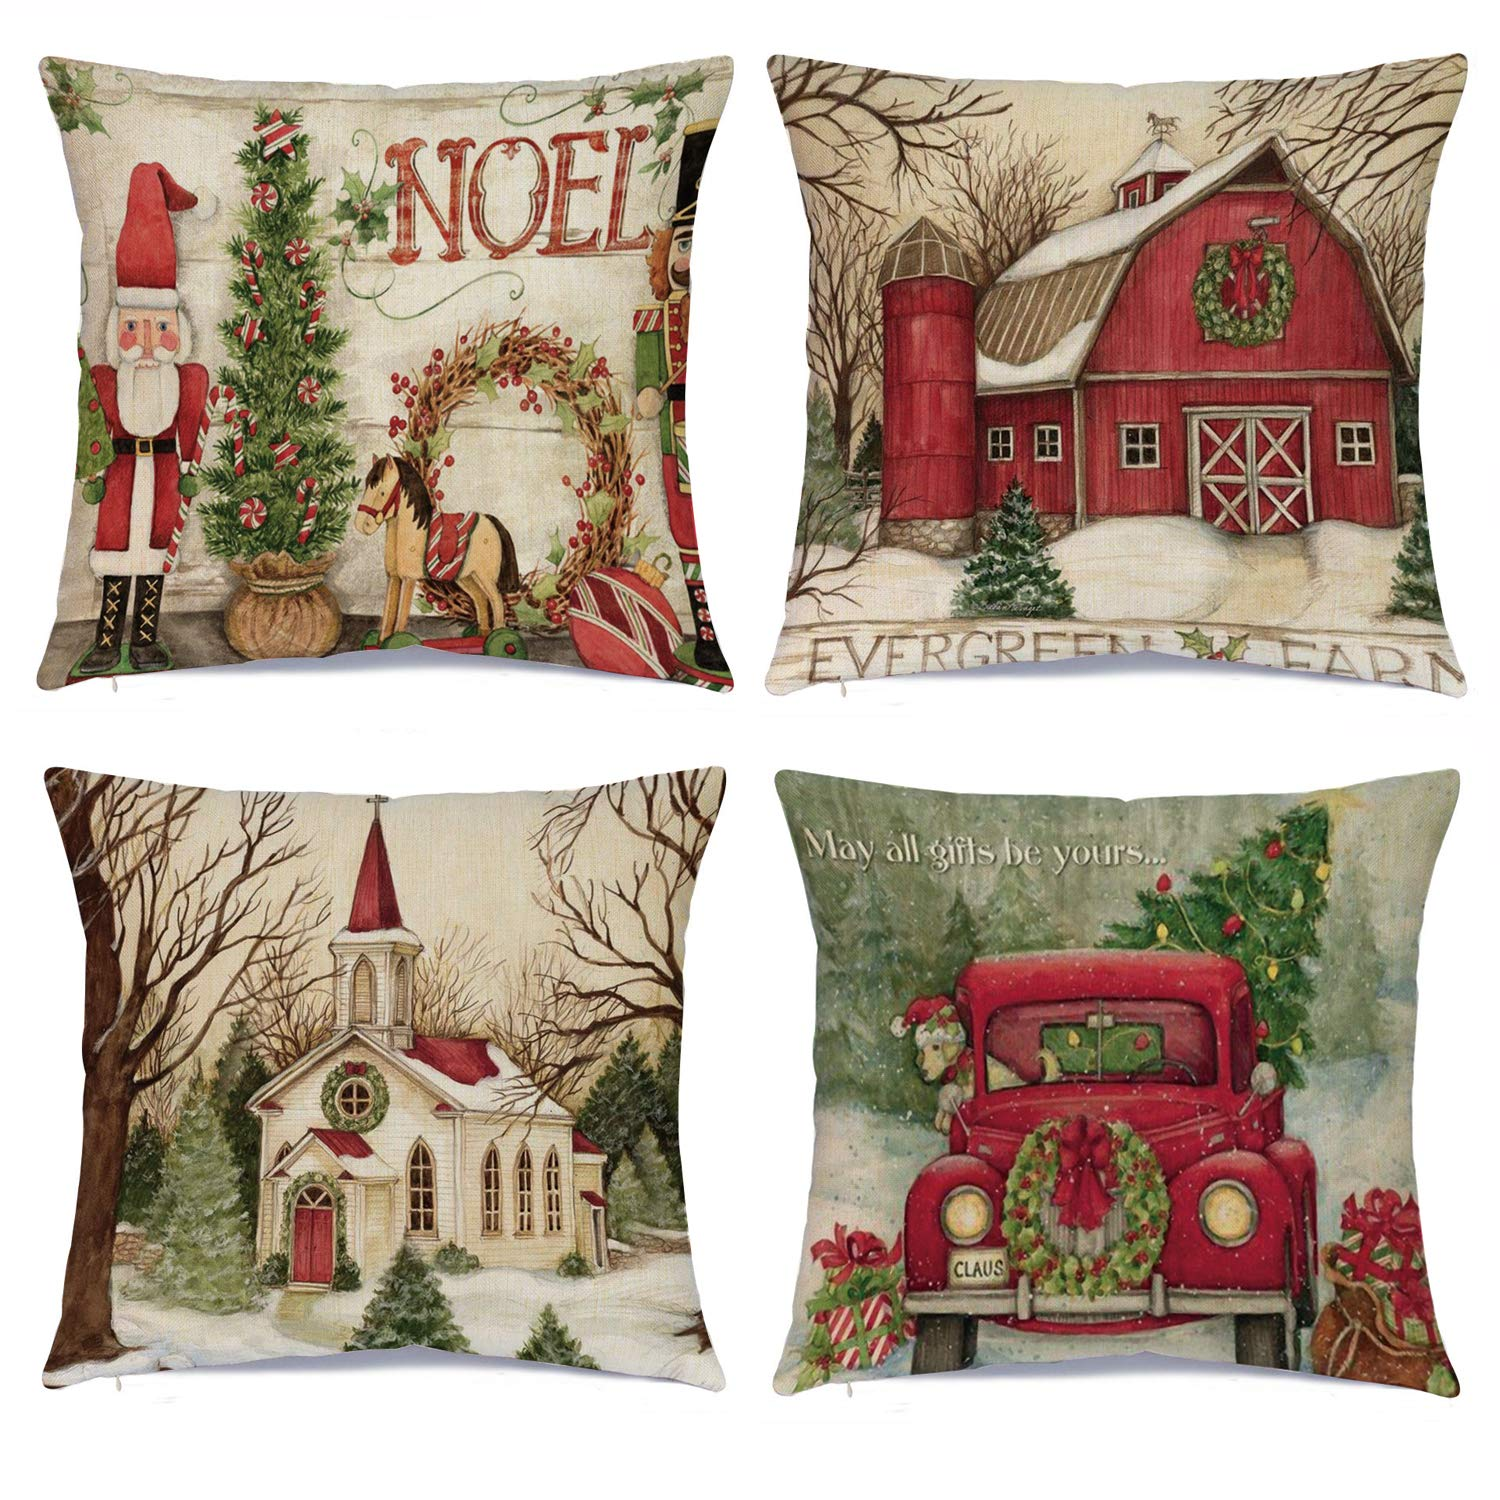 Christmas Bedding Sets Sale 2019 Ease Bedding With Style